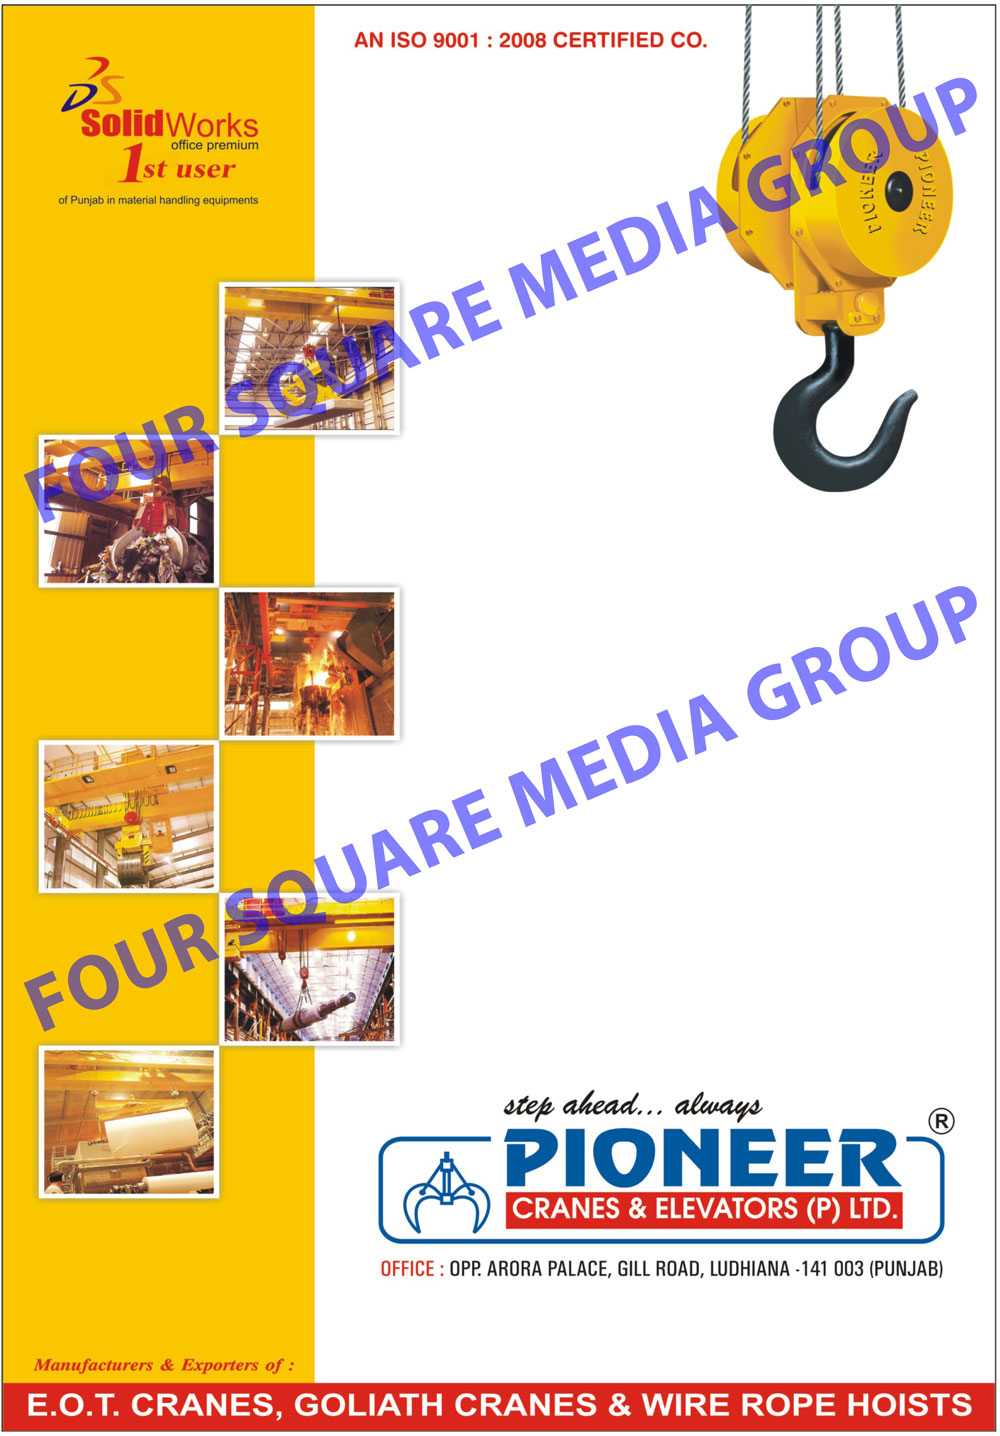 Material Handling Equipments, EOT Cranes, Goliath Cranes, Wire Rope Hoists, Elevators,Chain Pulley Blocks, Single Girder EOT Cranes, Double Girder EOT Cranes, Jib Cranes